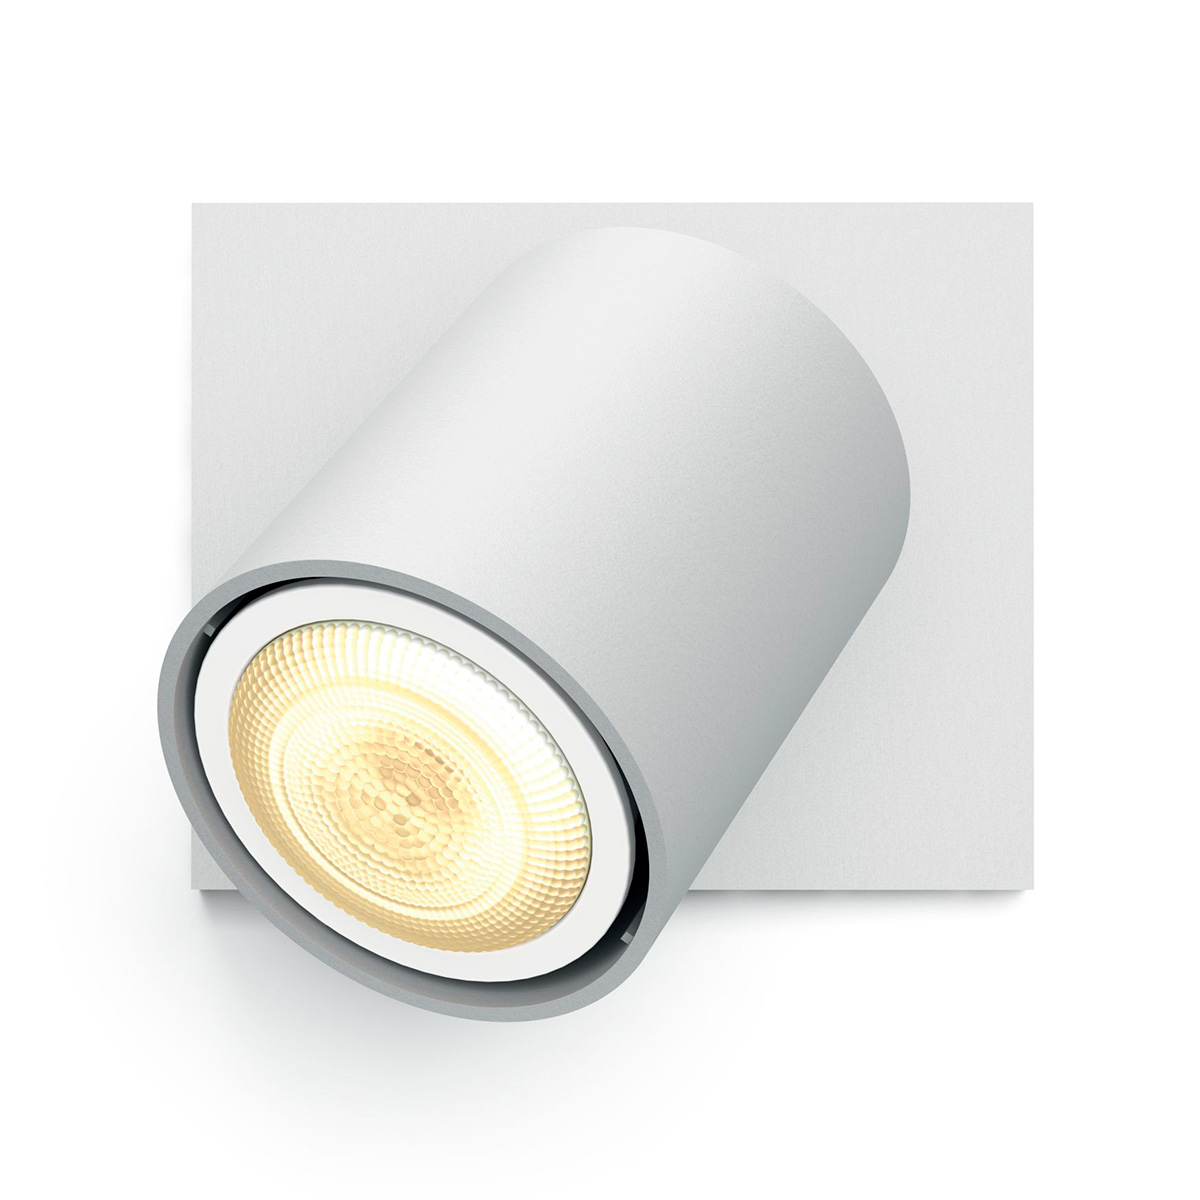 Image of   Philips Connected single spot - White Ambiance - Runner - Hvid